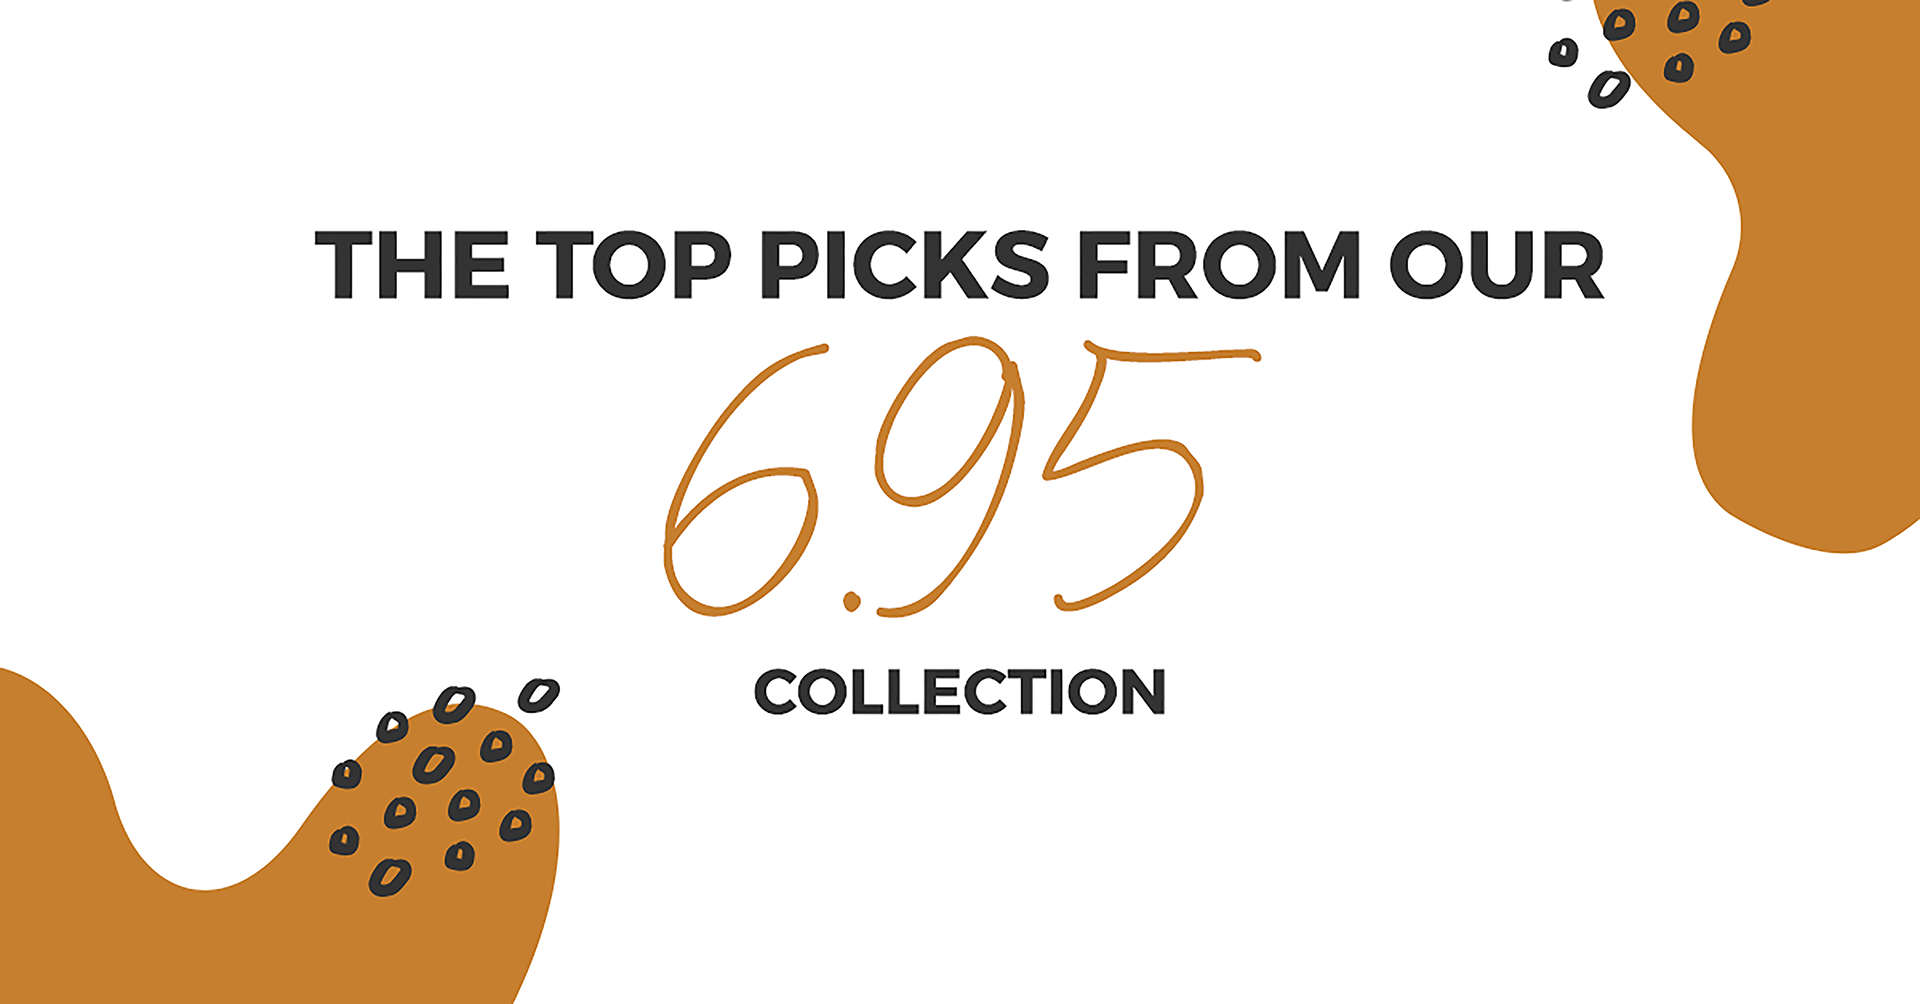 THE TOP PICKS FROM OUR £6.95 EYEWEAR COLLECTION